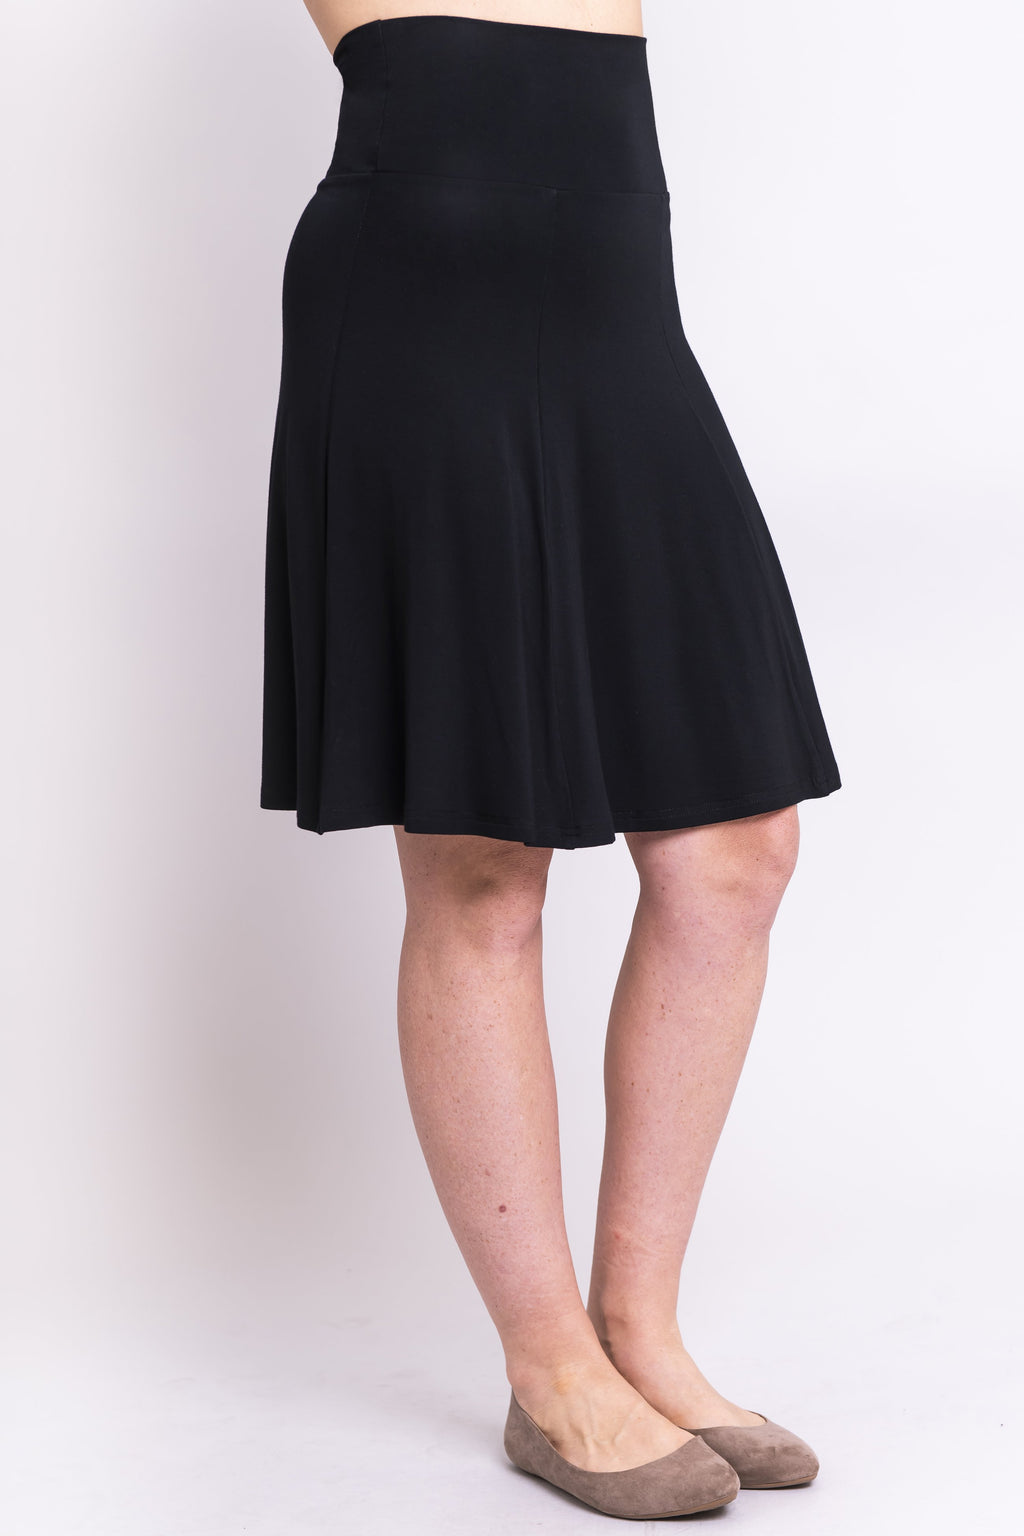 Aly Skirt, Black, Bamboo - Blue Sky Clothing Co